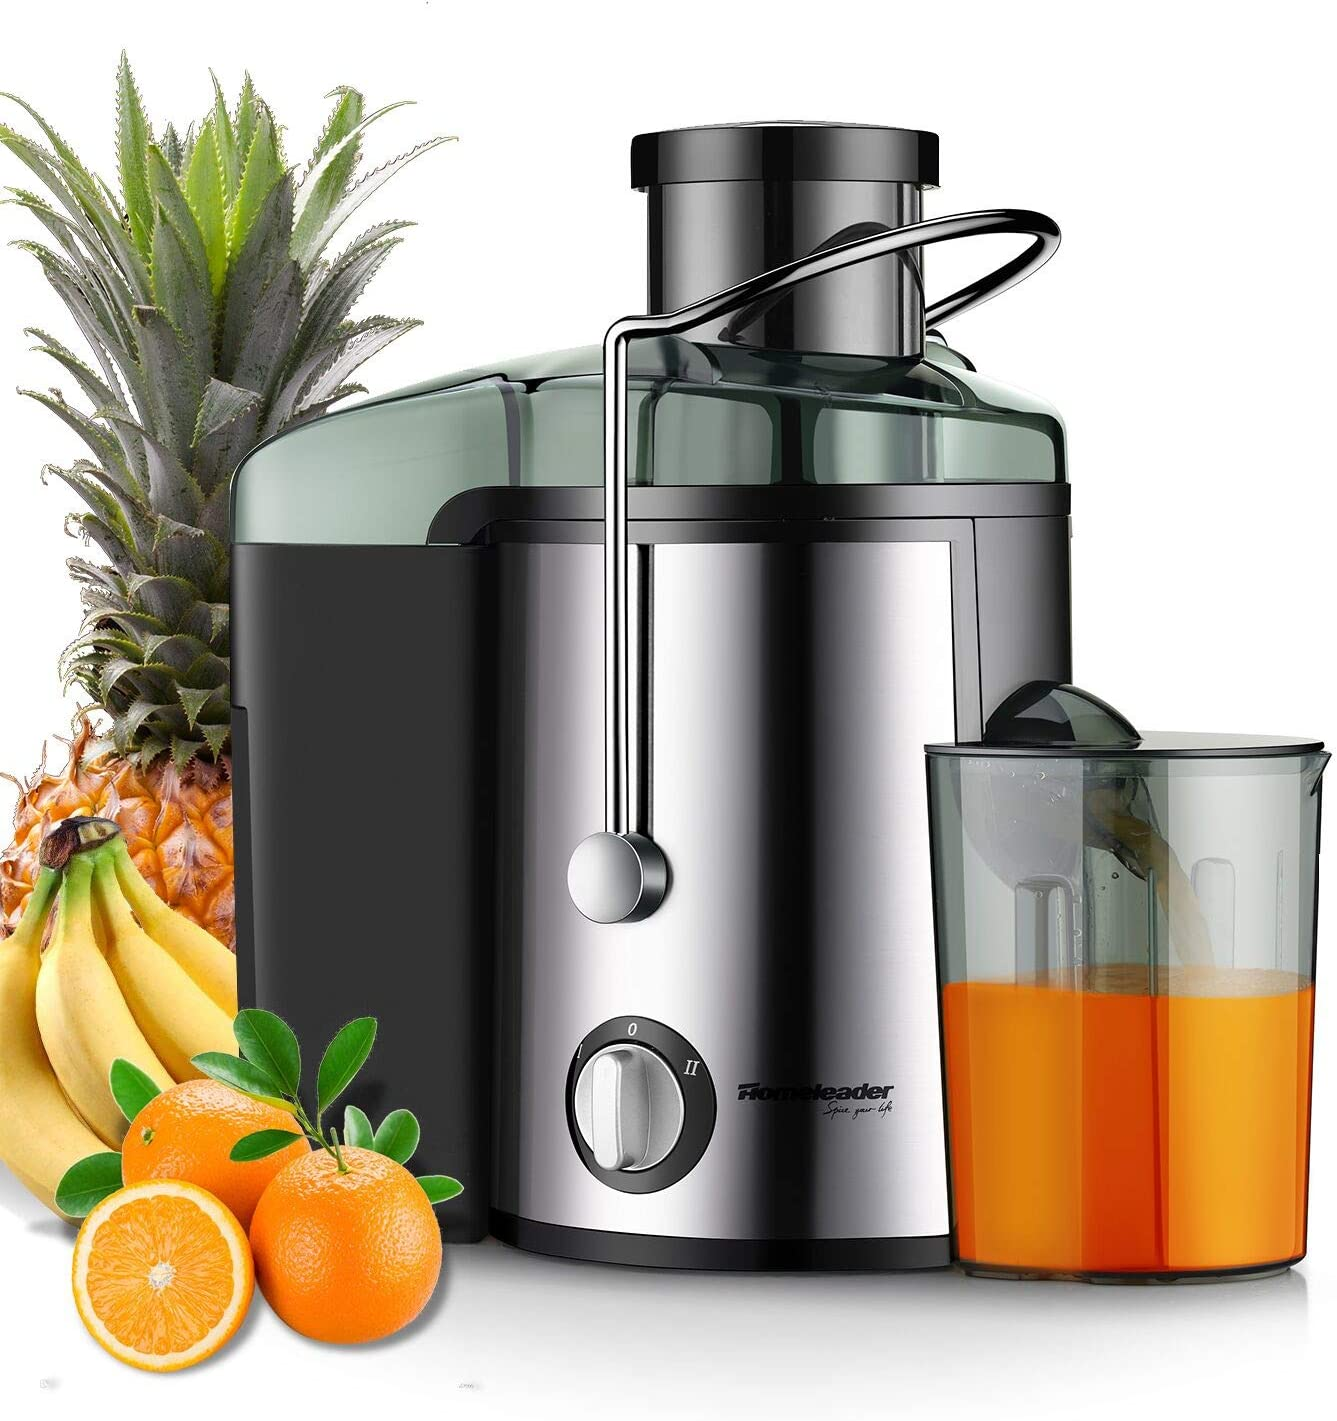 Juicer Juice Extractor, Homeleader Stainless Steel Centrifugal Juicer with 3 Wide Mouth, for Fruits and Vegetables, BPA-FREE